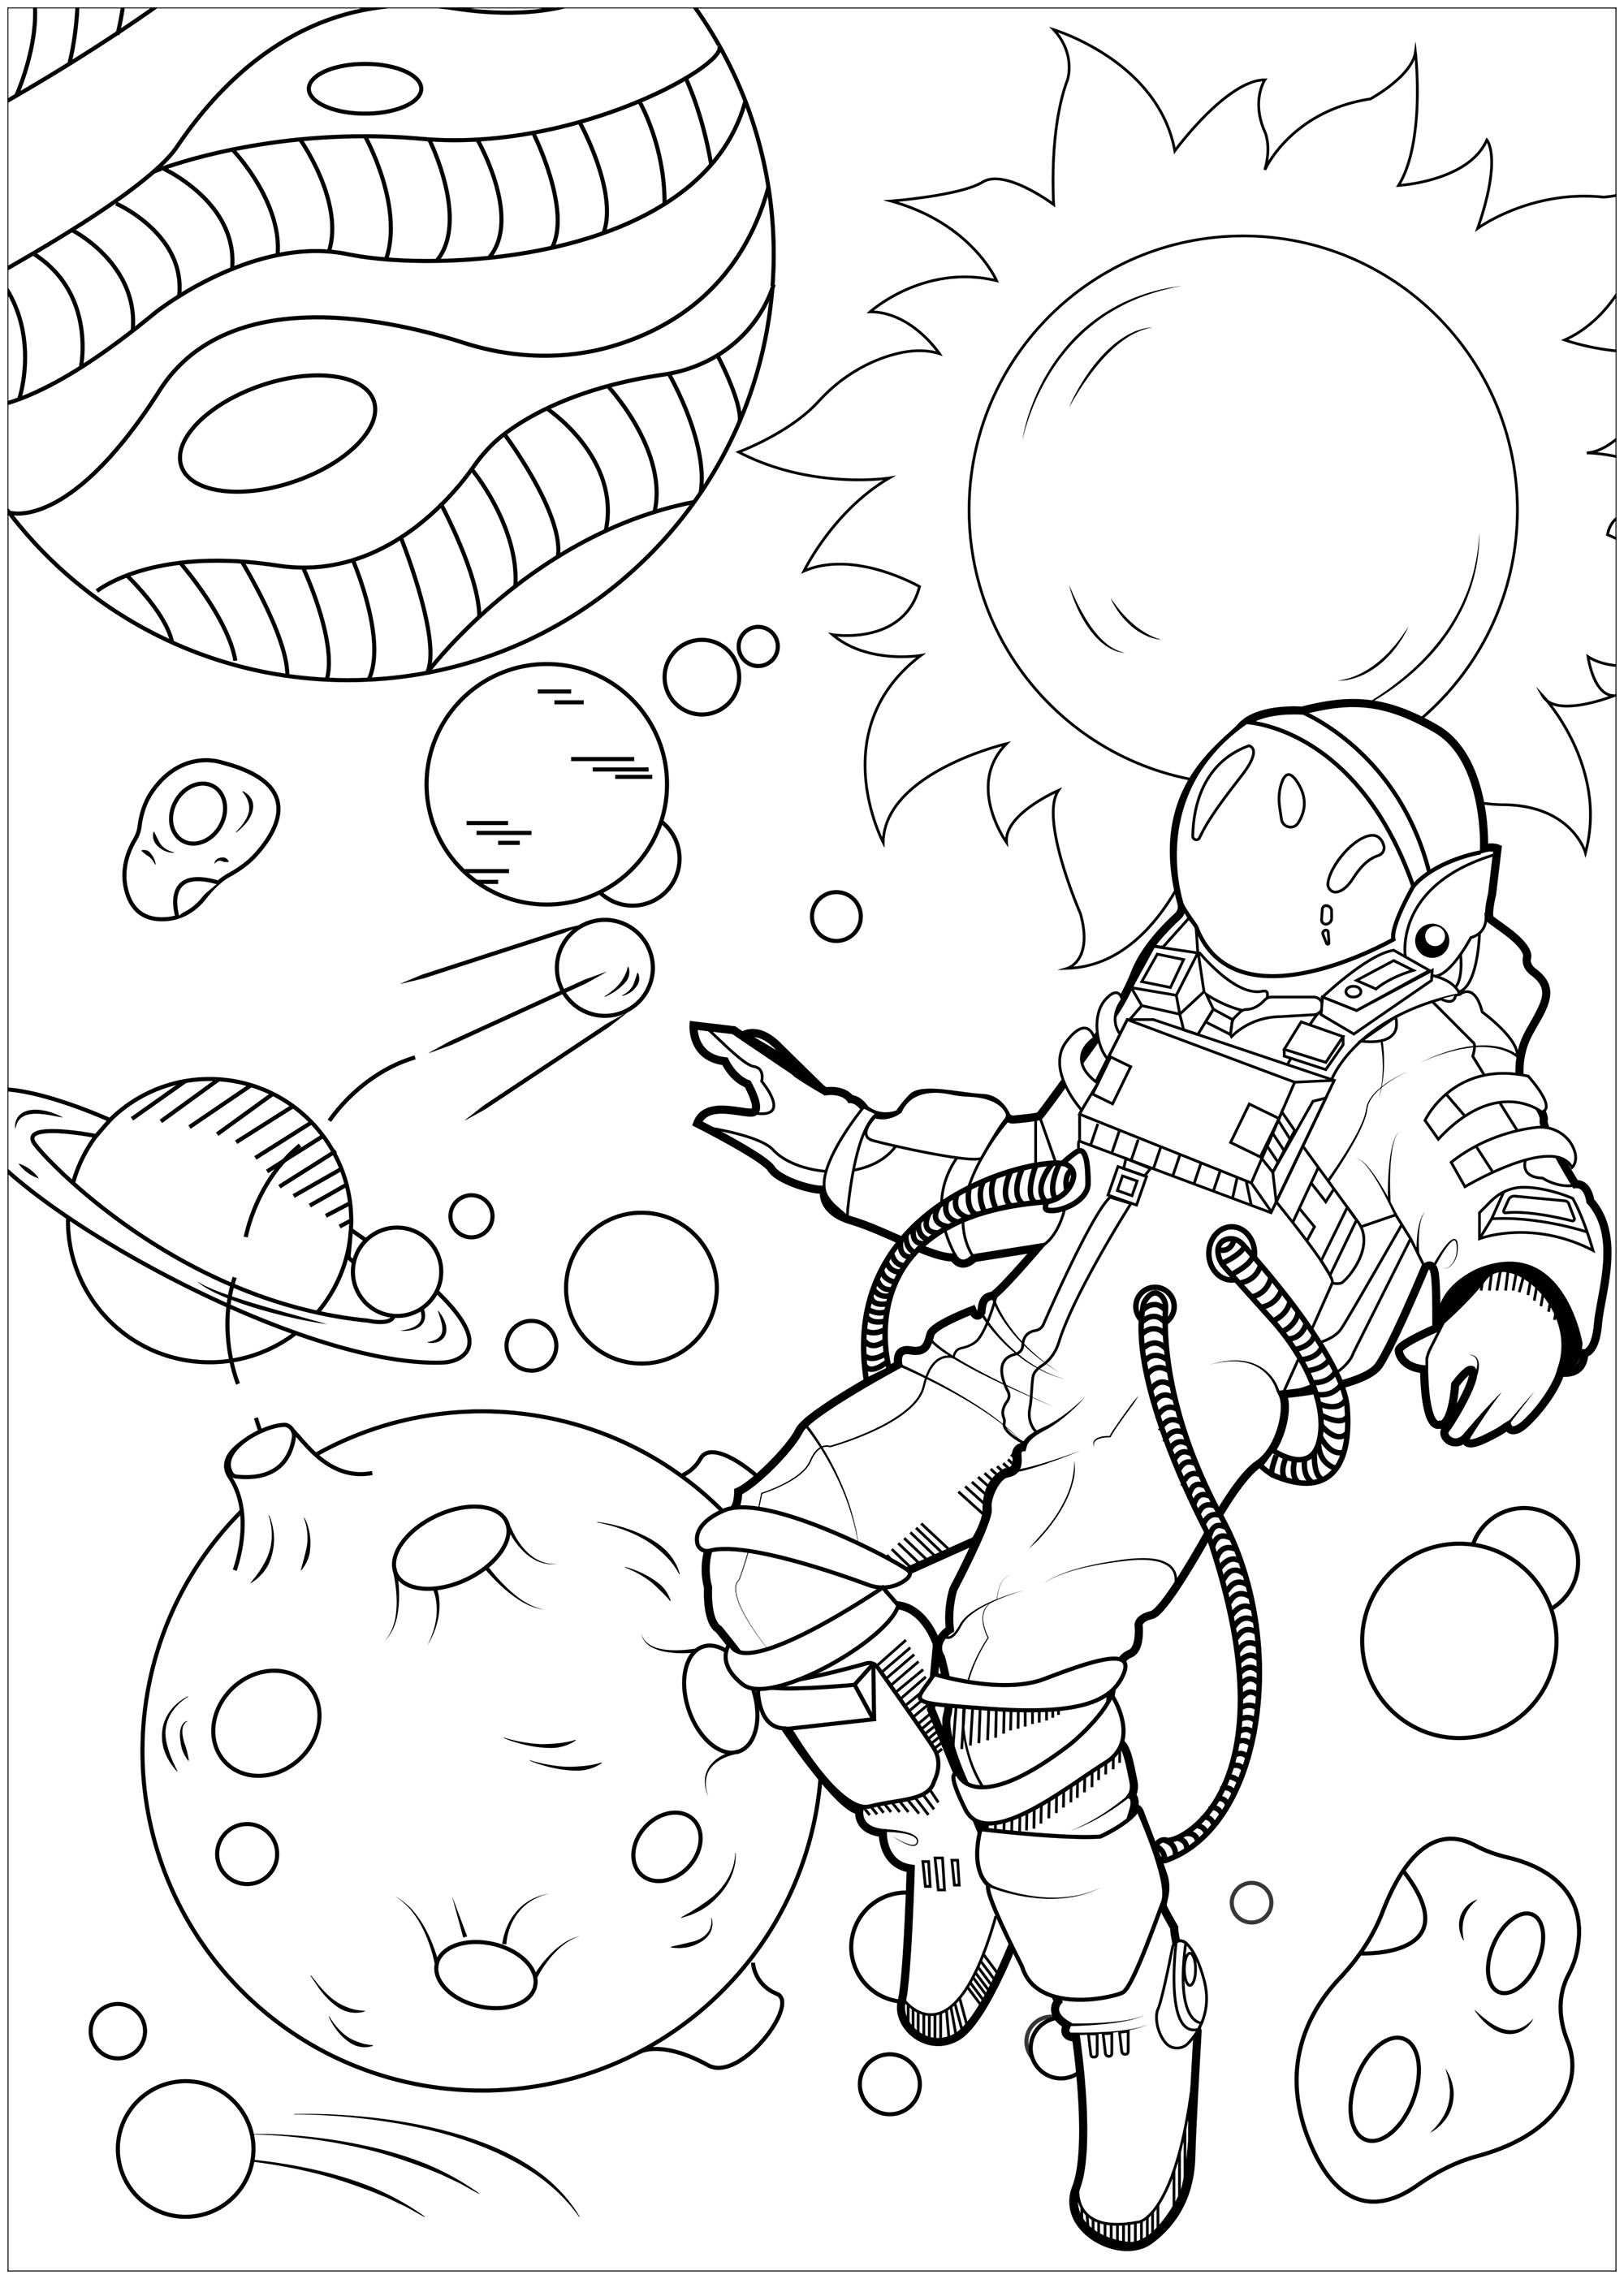 Let yourself float in the galaxy, this astronaut will show you the way!